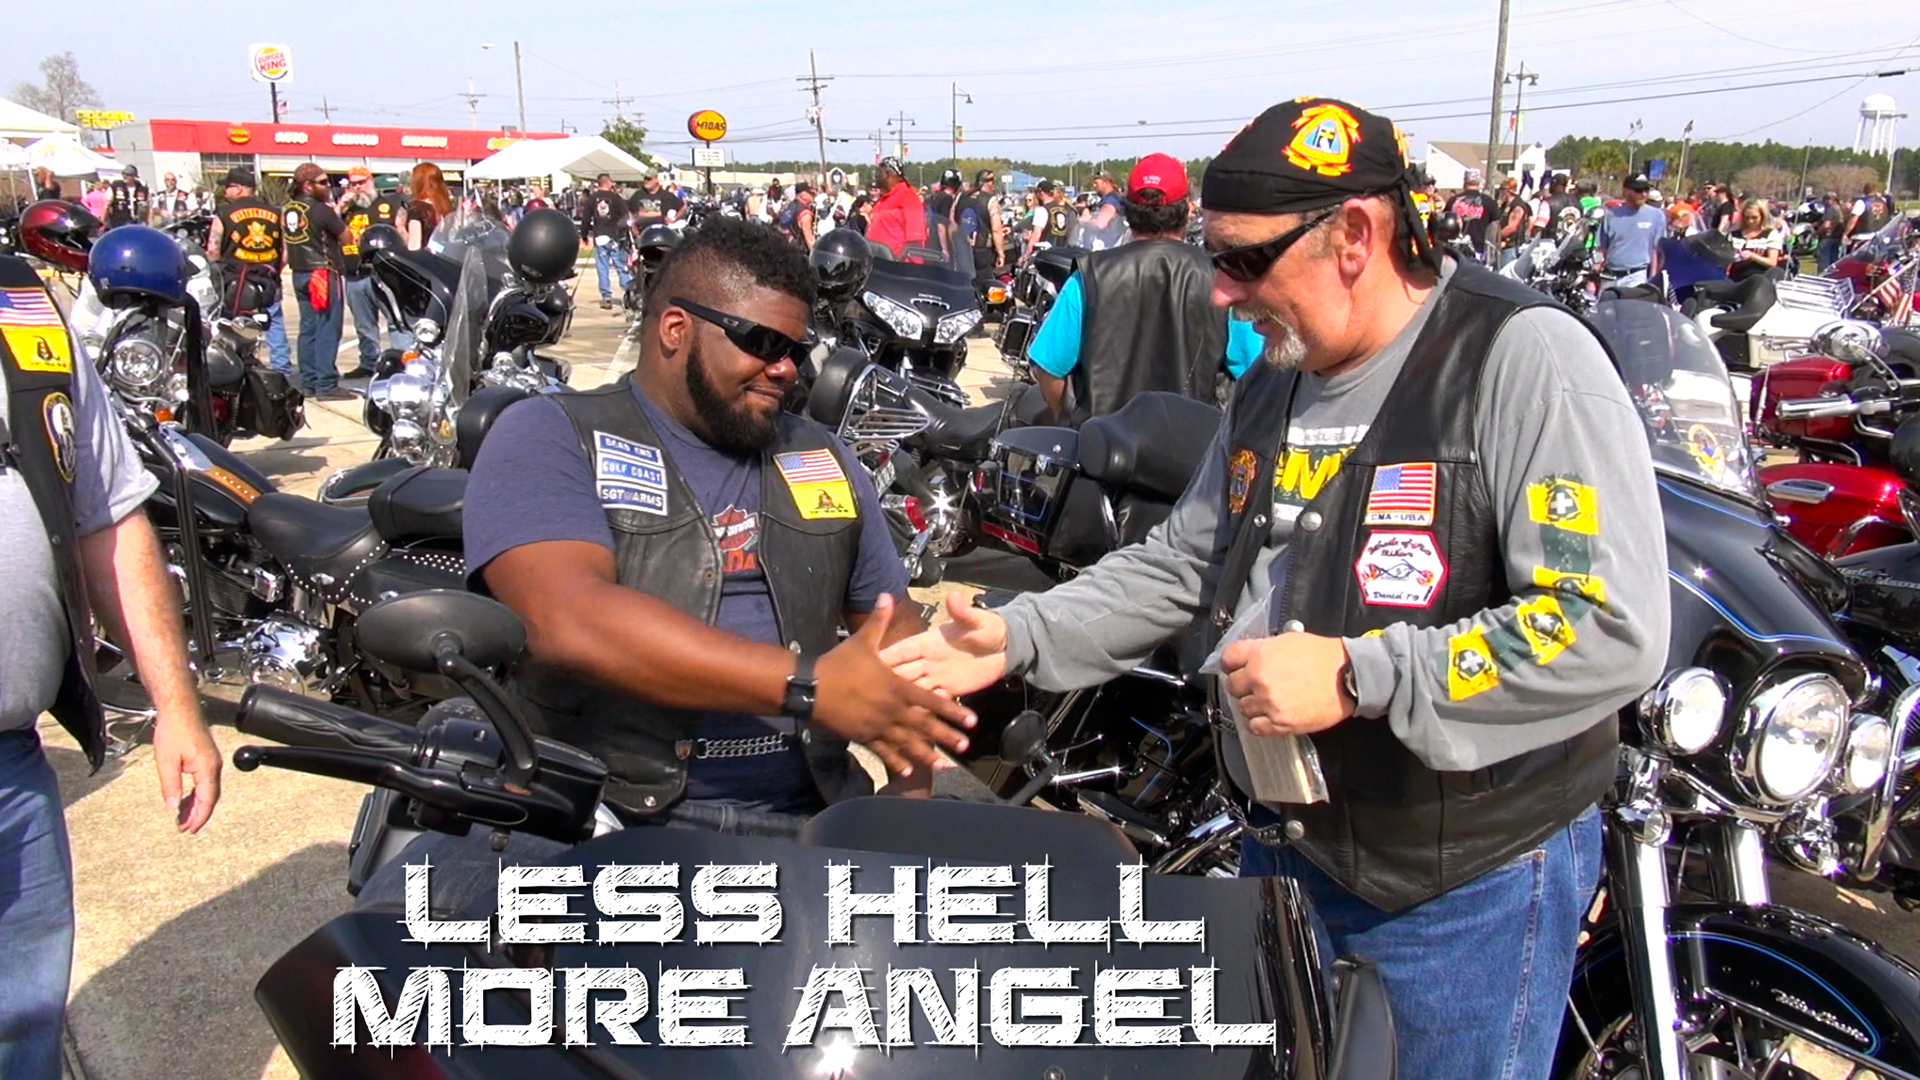 Less Hell More Angel